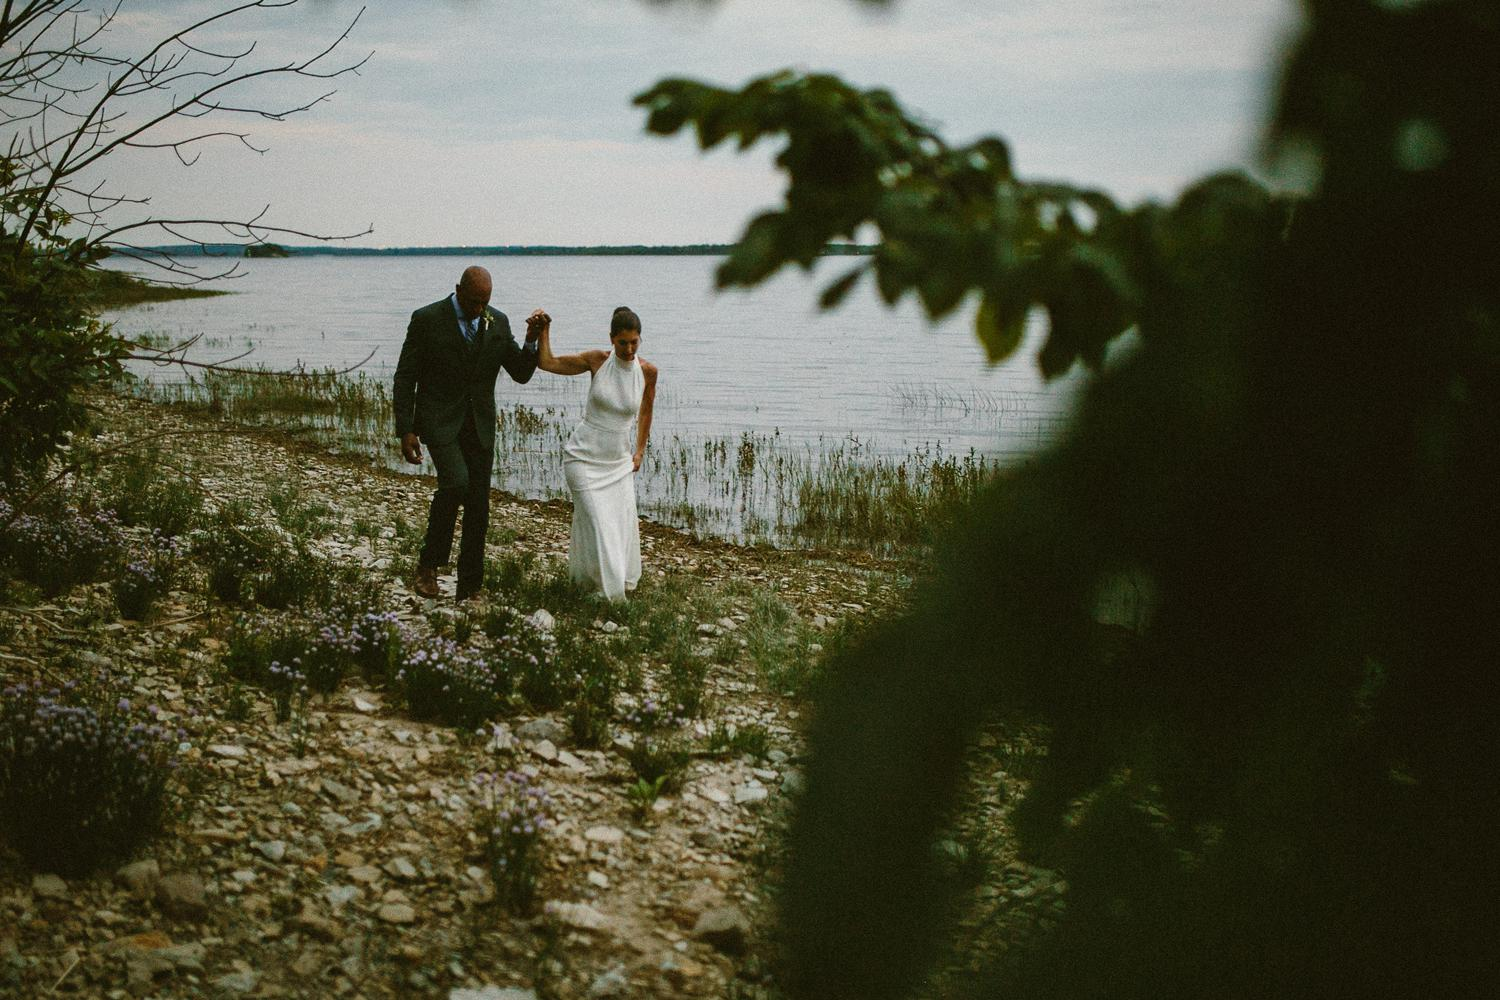 ottawa river small intimate wedding-259.jpg